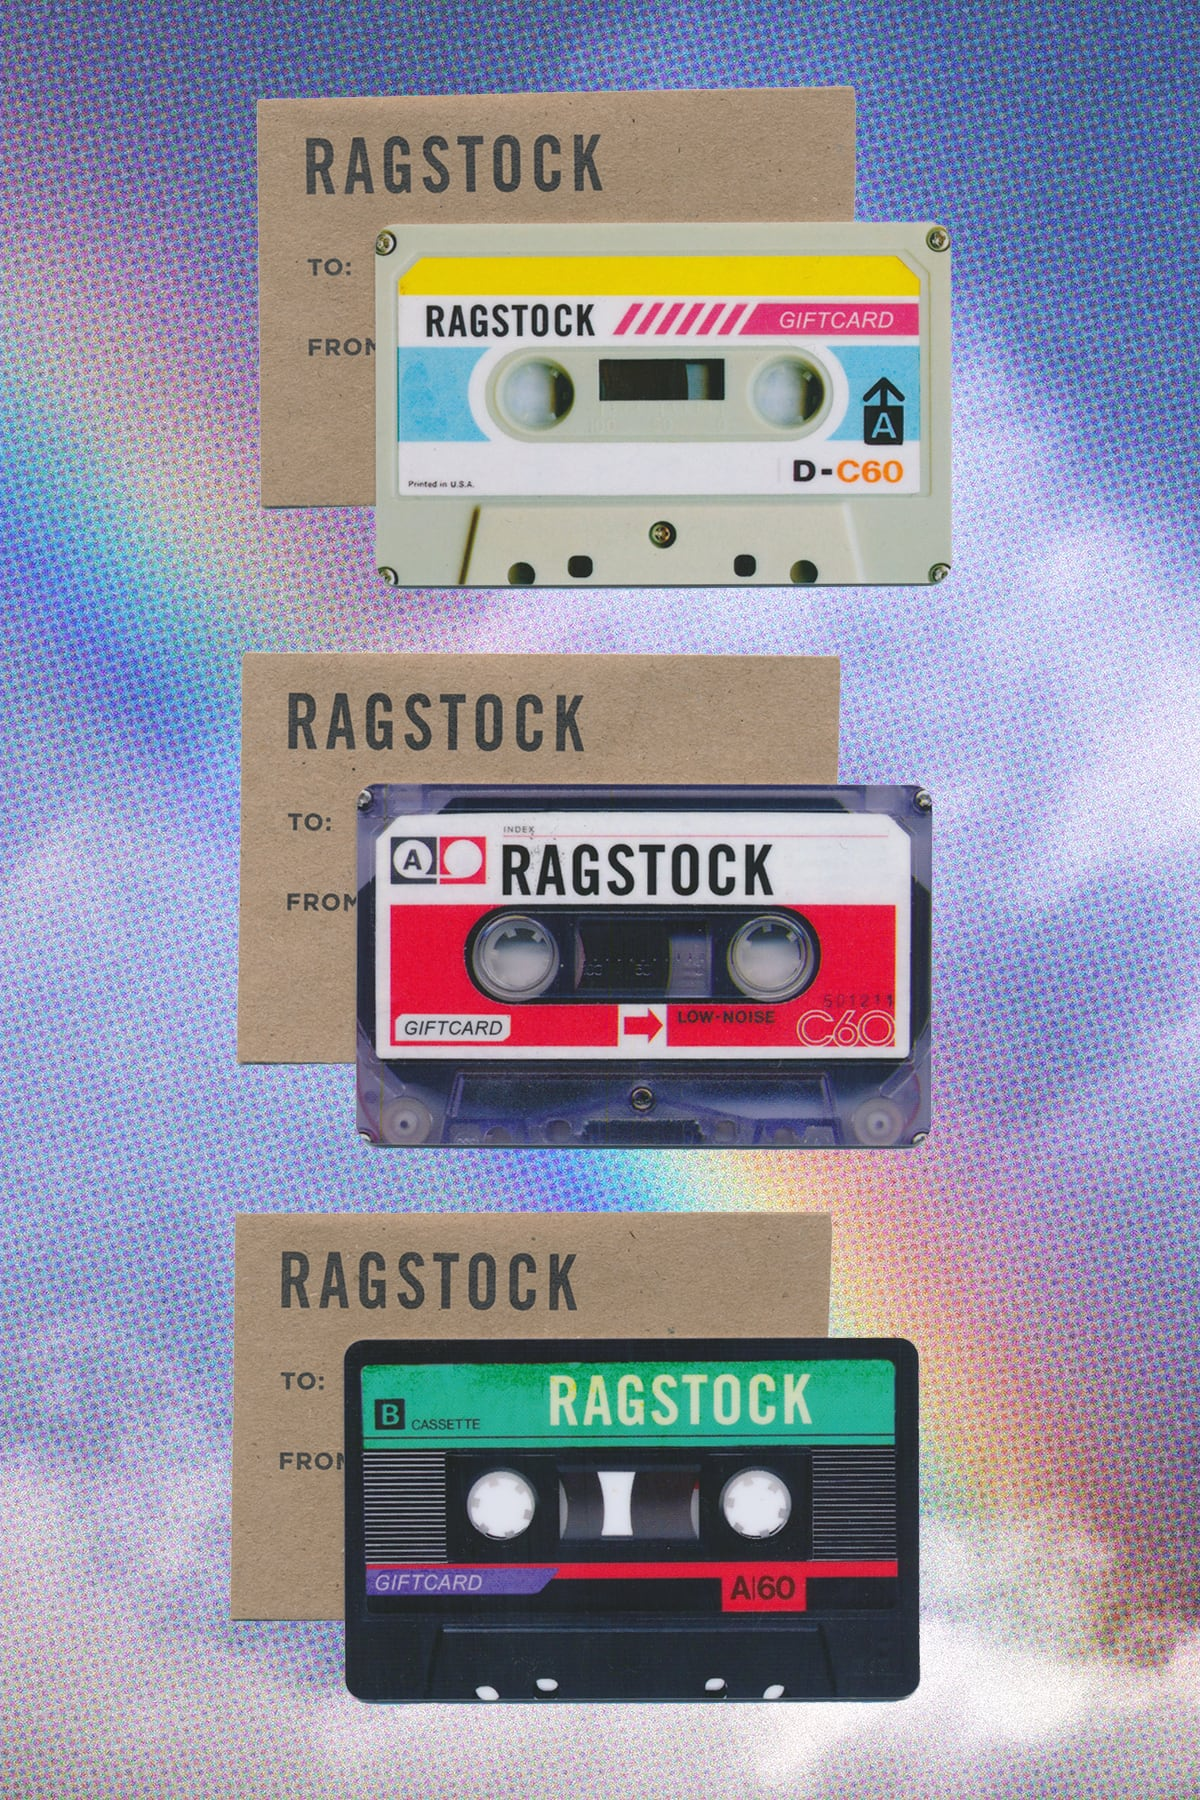 ragstock gift cards and envelopes